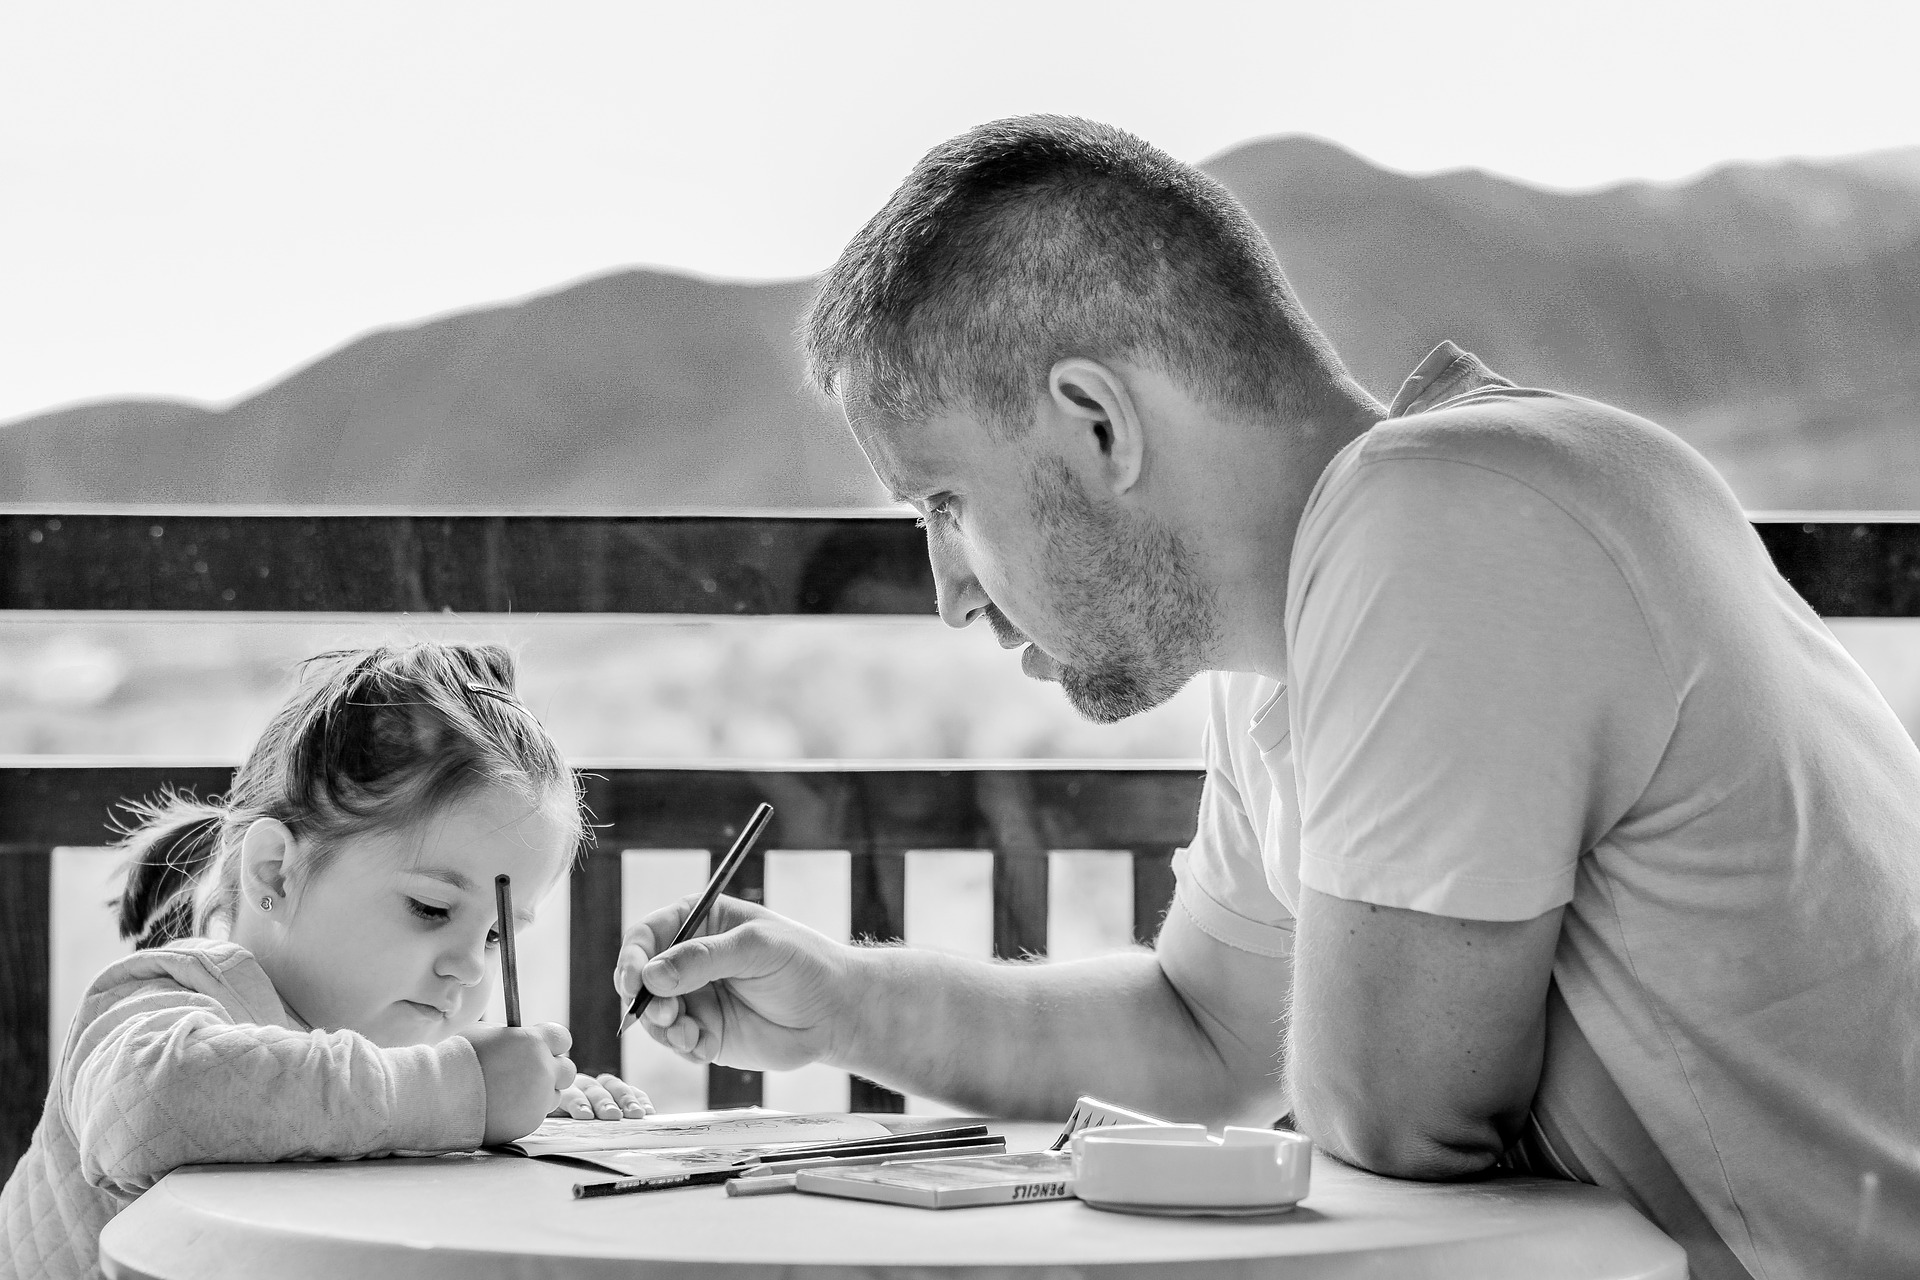 Black and white picture of toddler girl with hair tied back writing with right hand and sitting at a round table opposite t-shirt wearing dad holding pen in right hand